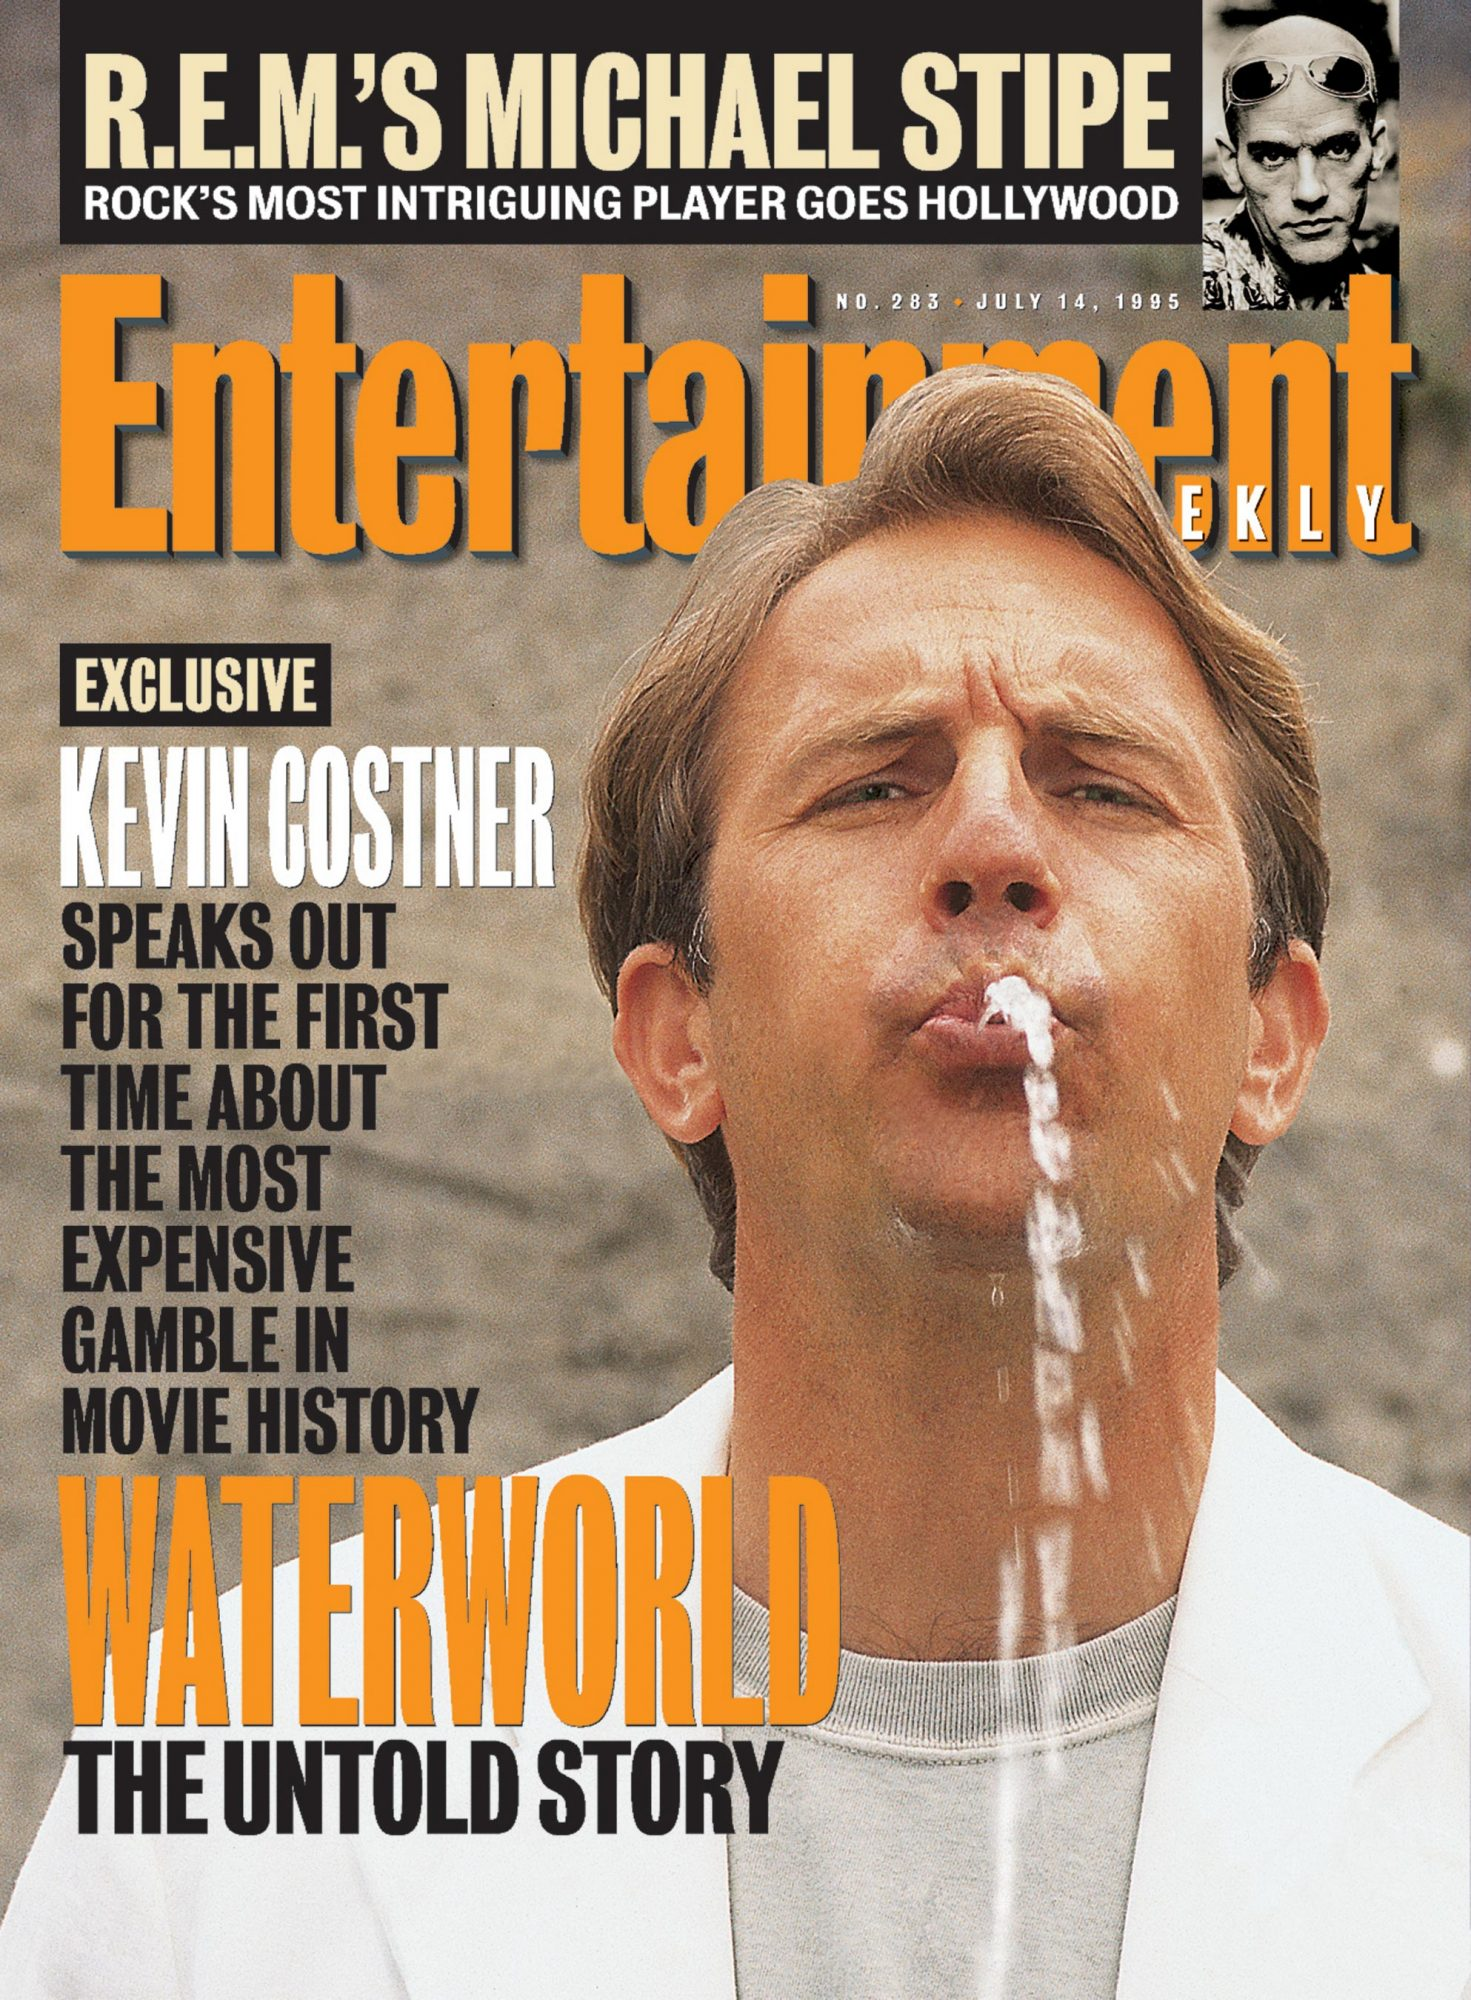 Entertainment WeeklyKevin CostnerJuly 14, 1995# 283